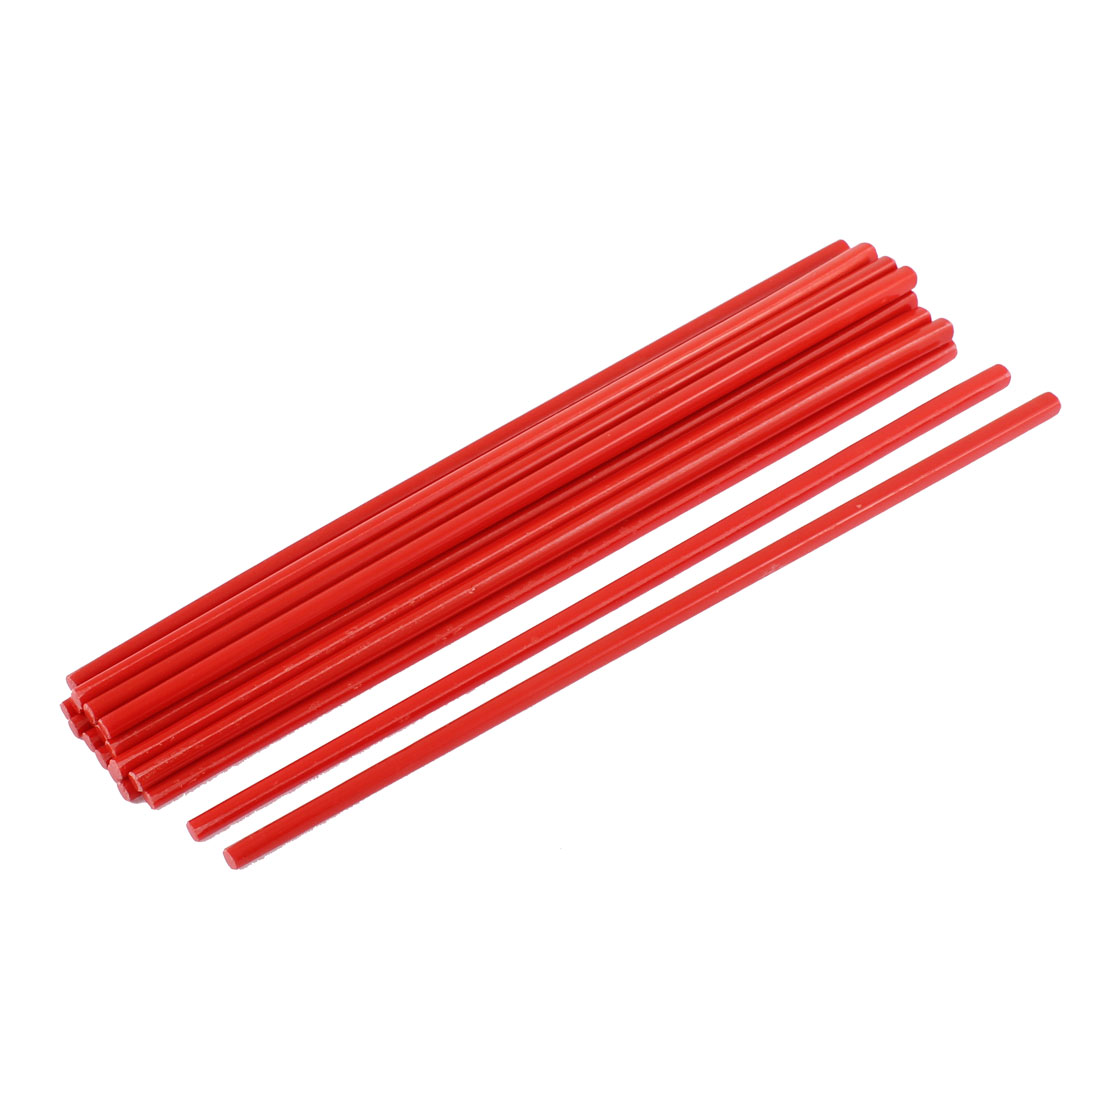 Home Tableware Dinner Plastic Chopsticks Red 27cm Length 10Pairs